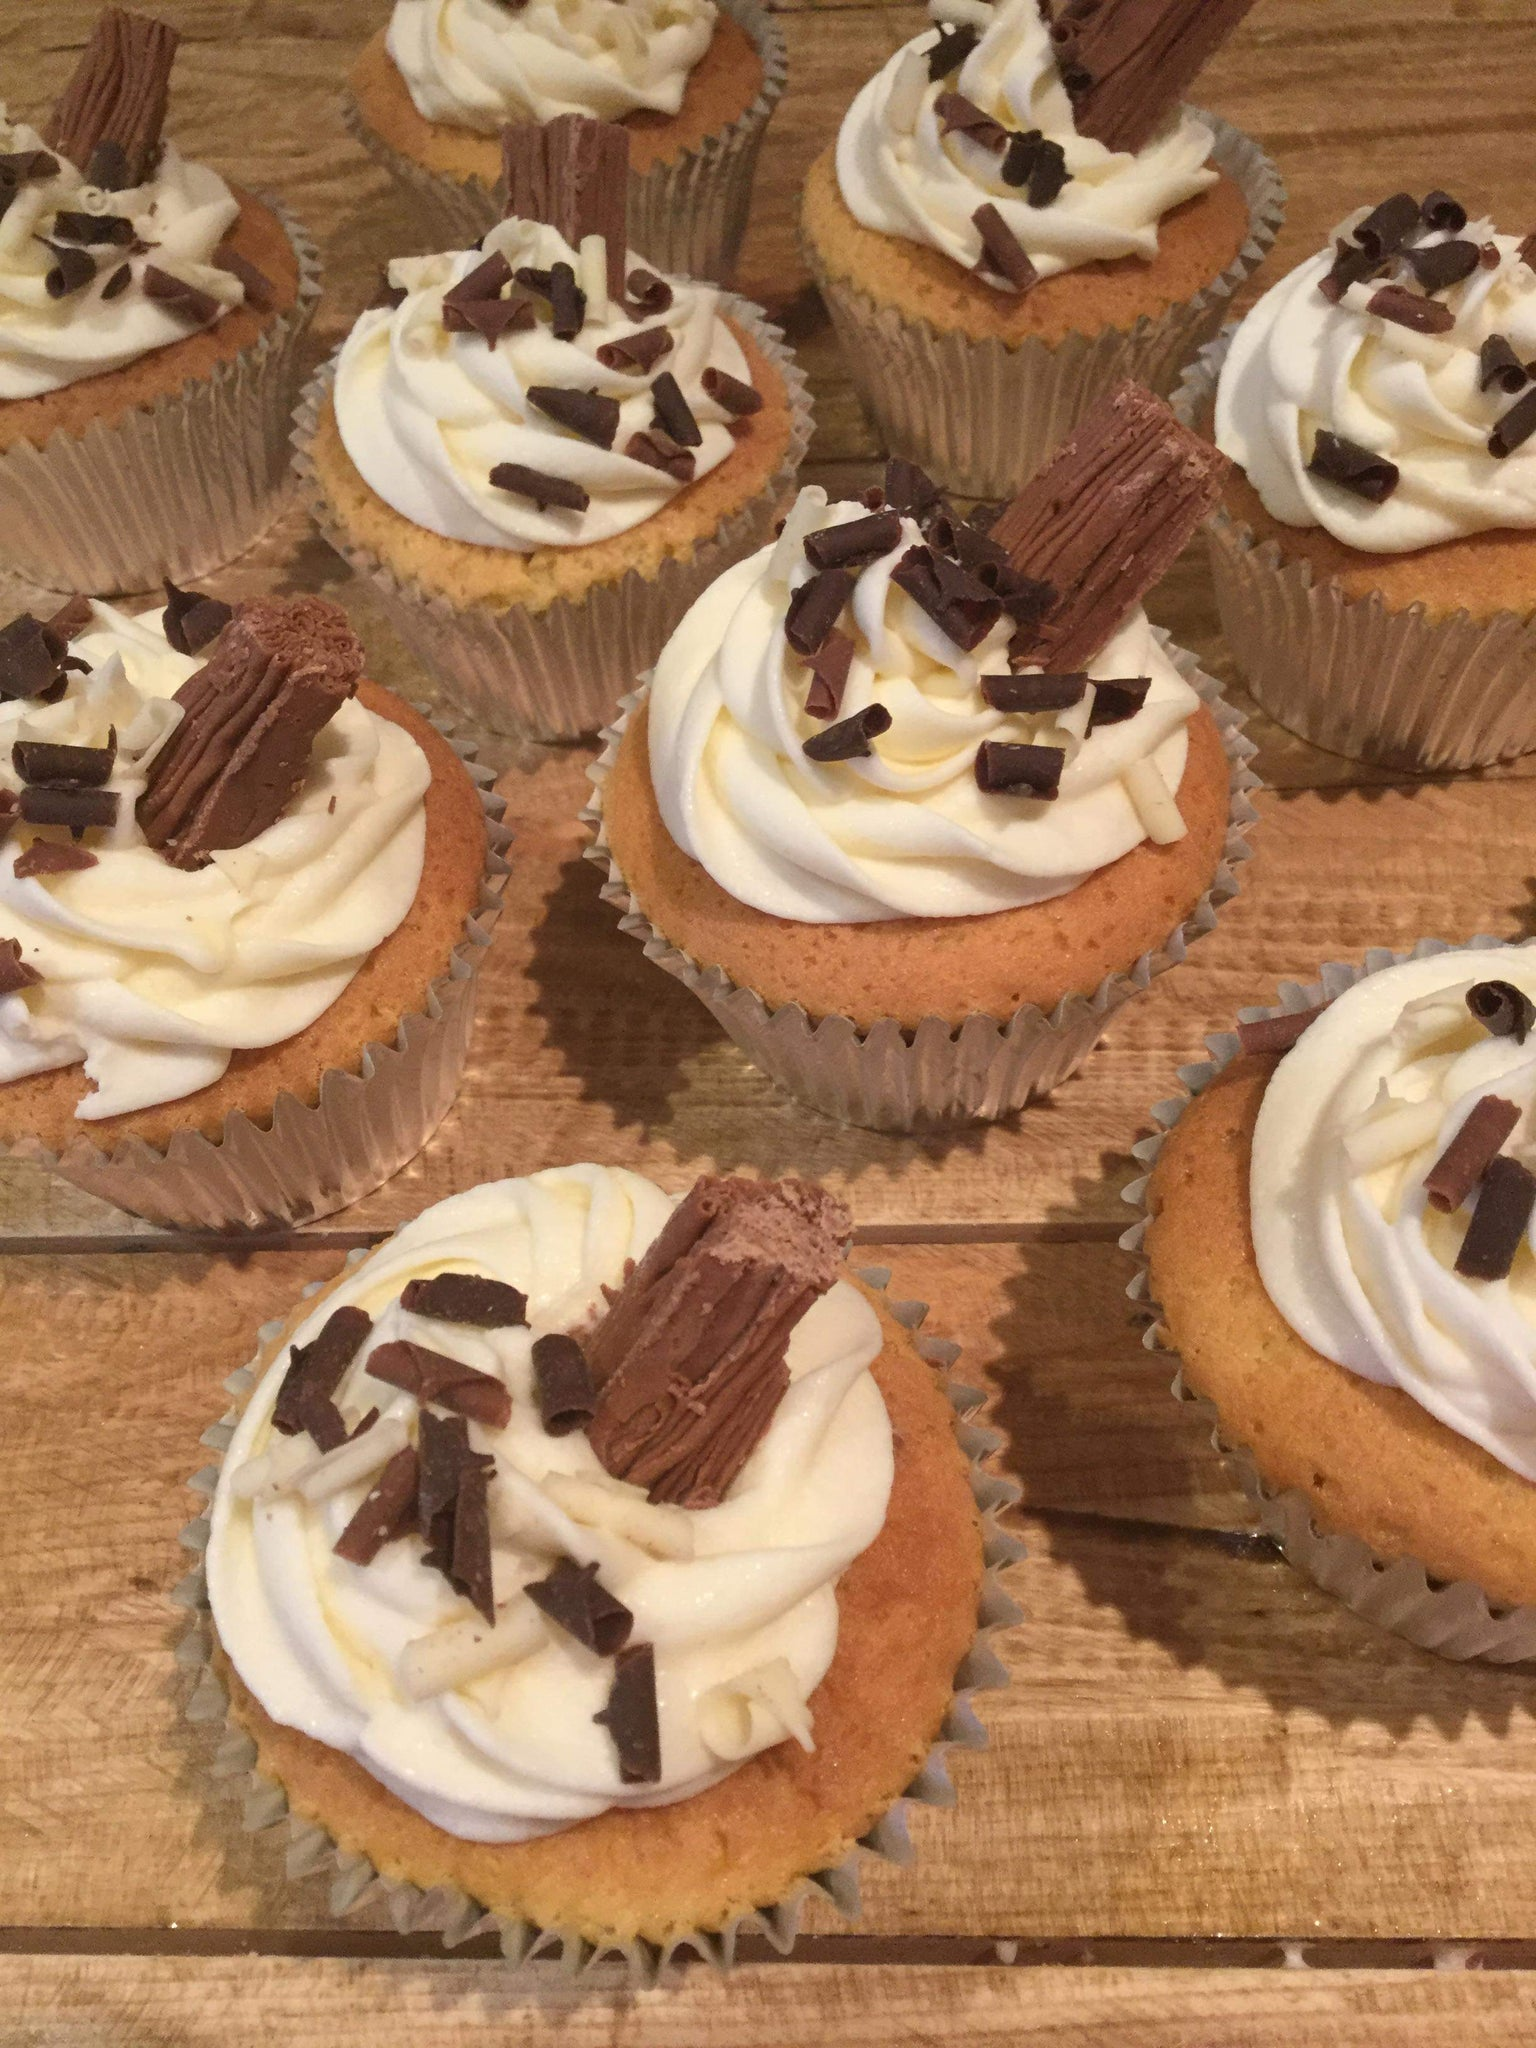 Baking with children - Guest blog by Suzanne Heaven